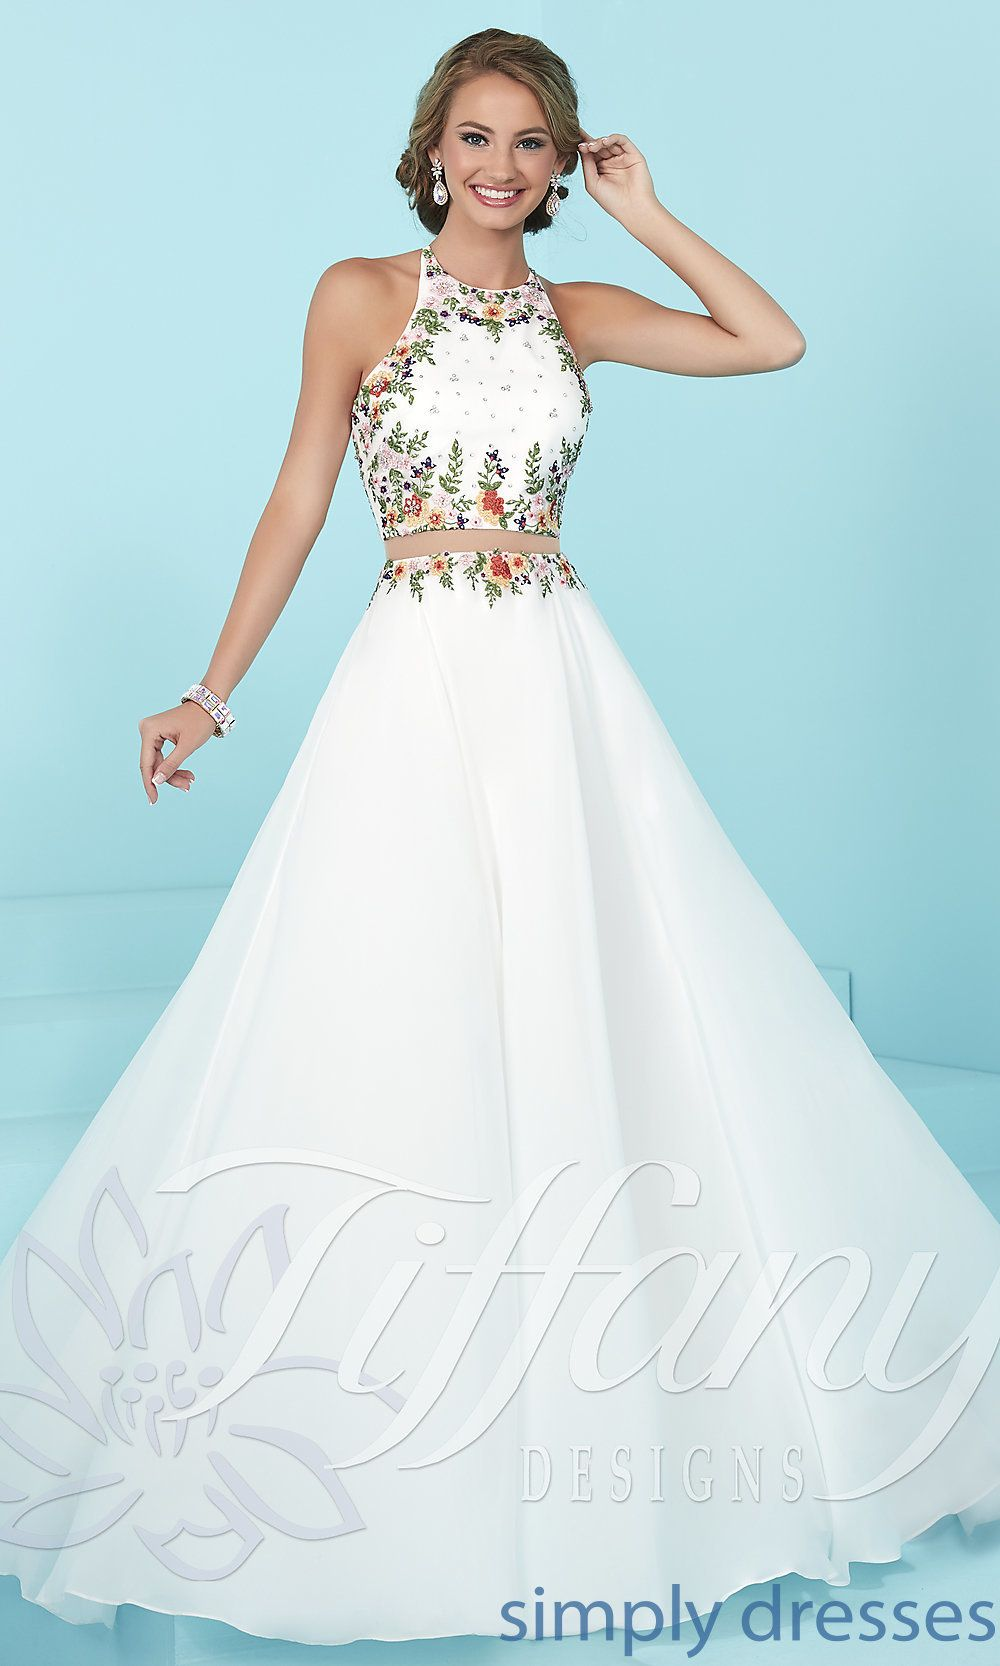 TF-16206 - High-Neck Tiffany Mock Two-Piece Prom Dress | Designer ...